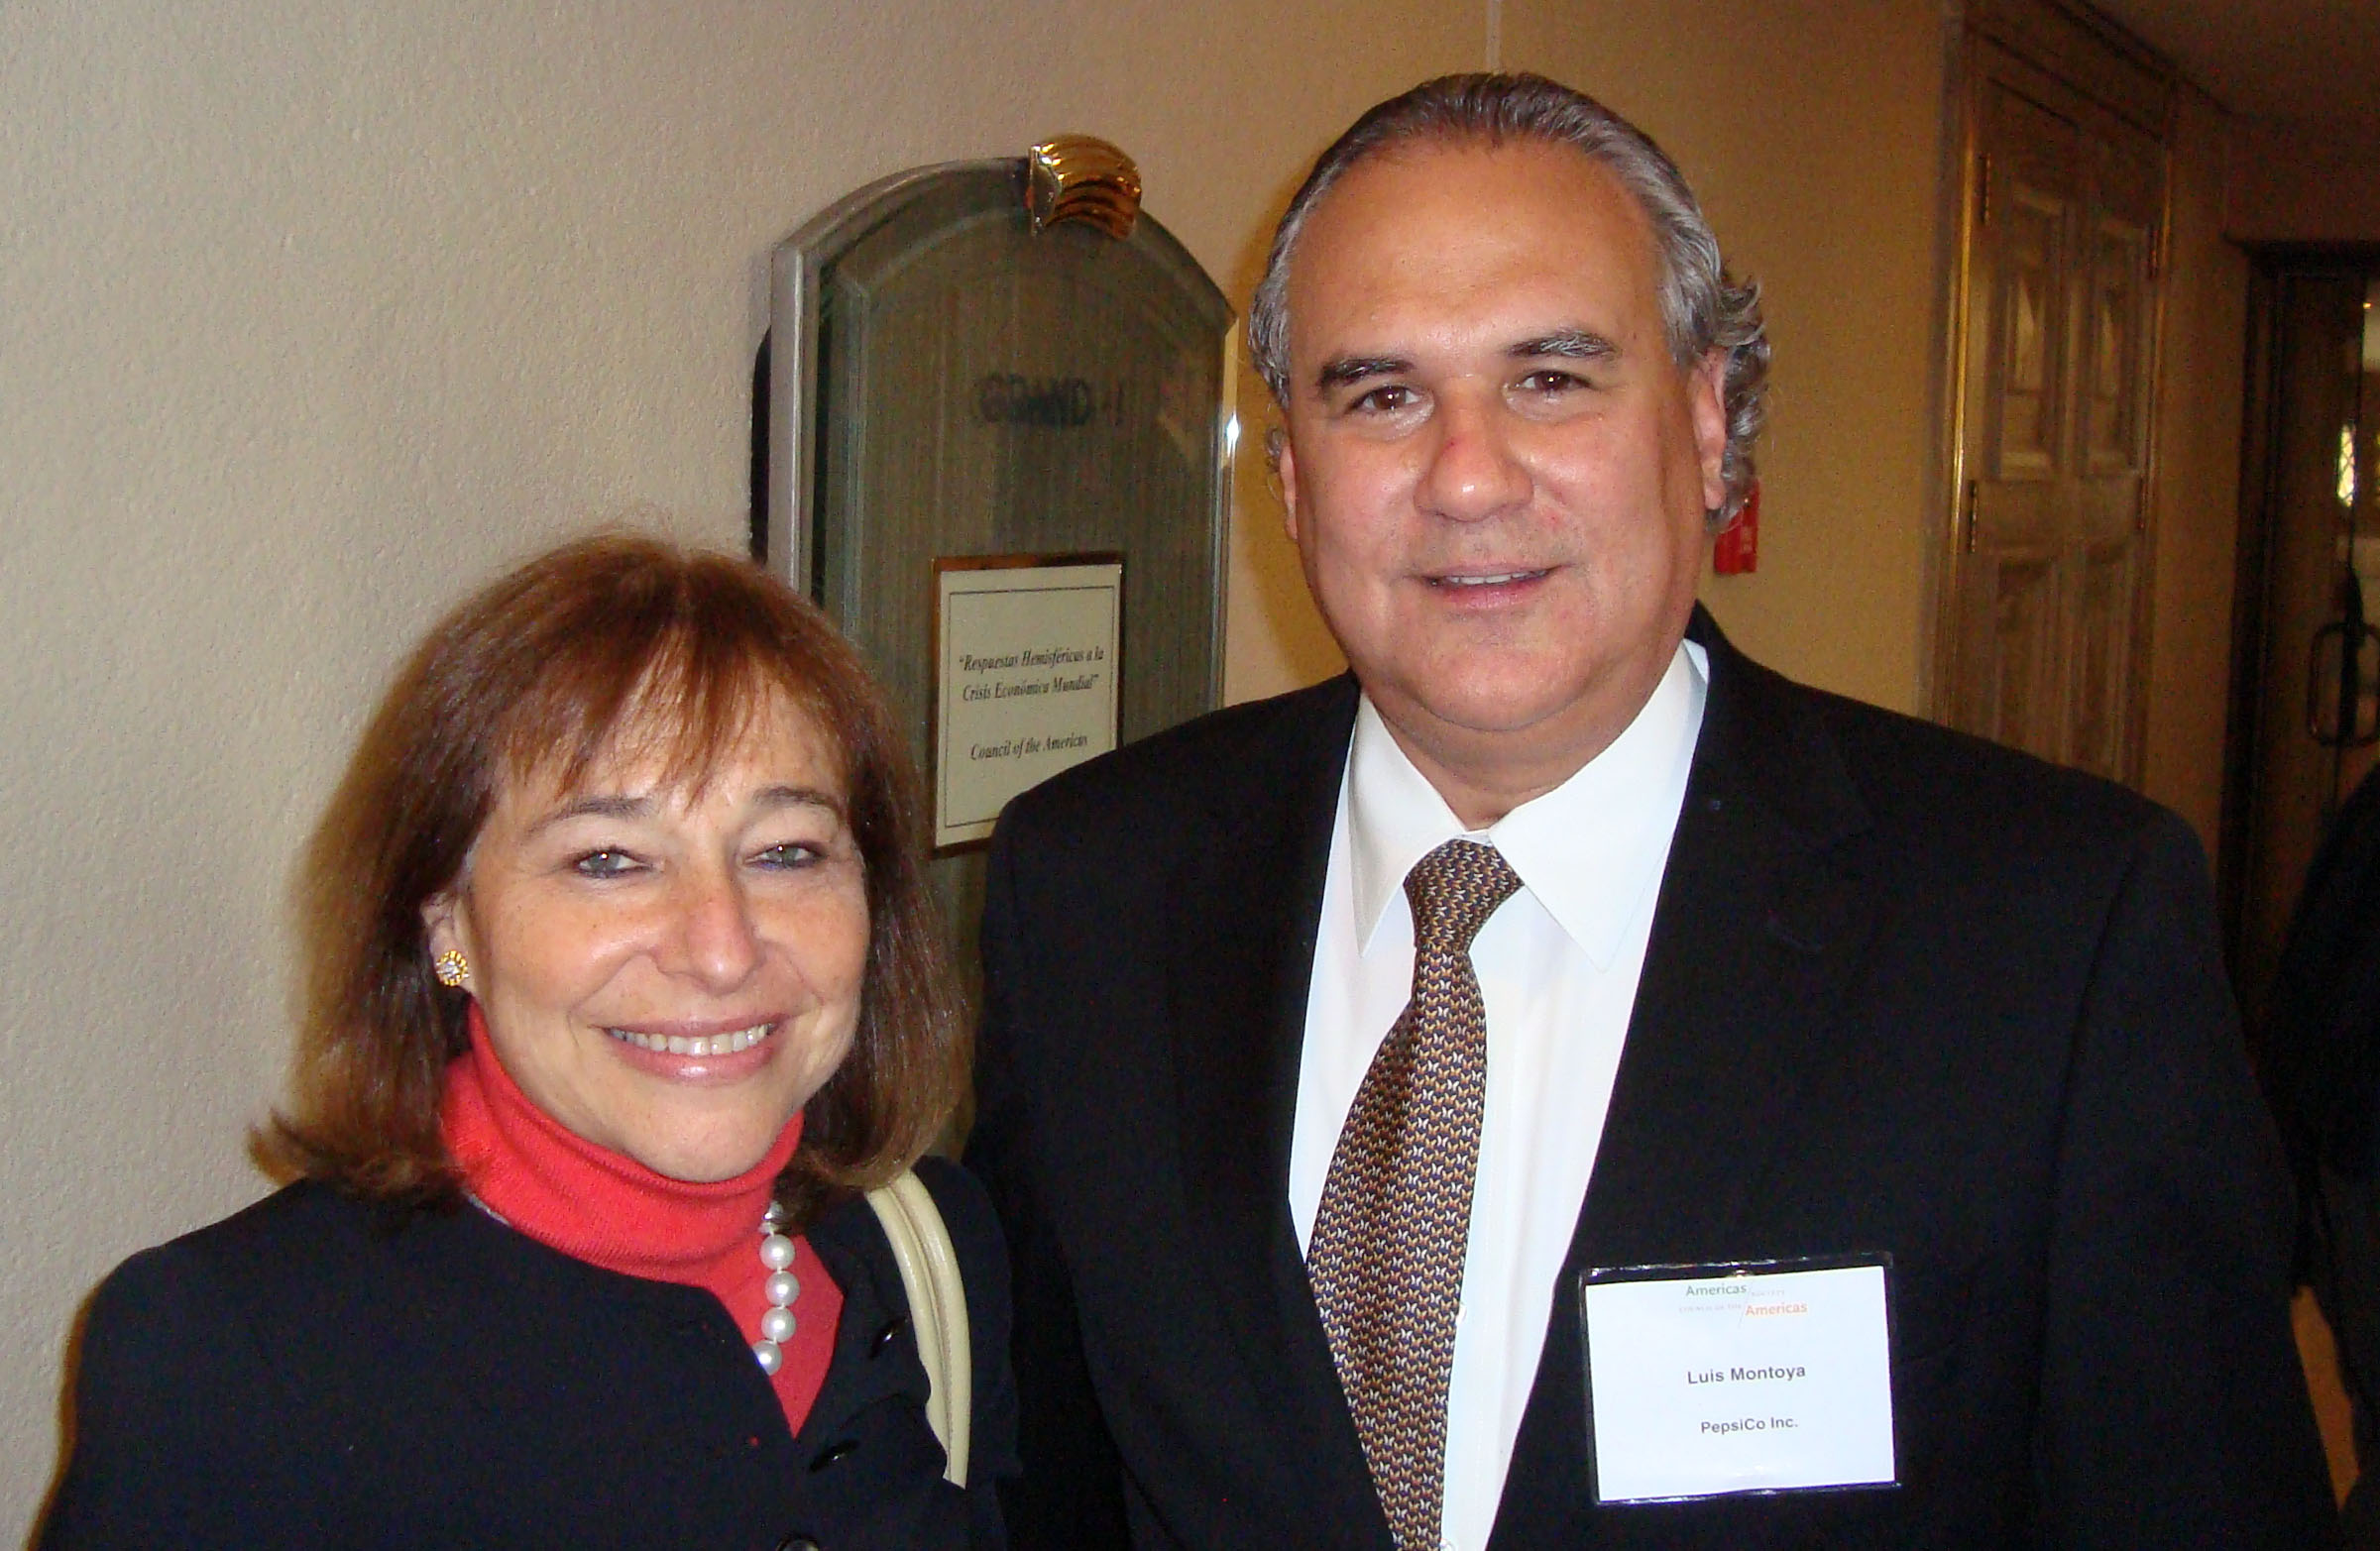 Susan Segal - CEO Council of Americas y Luis Montoya - Presidente PEPSICO